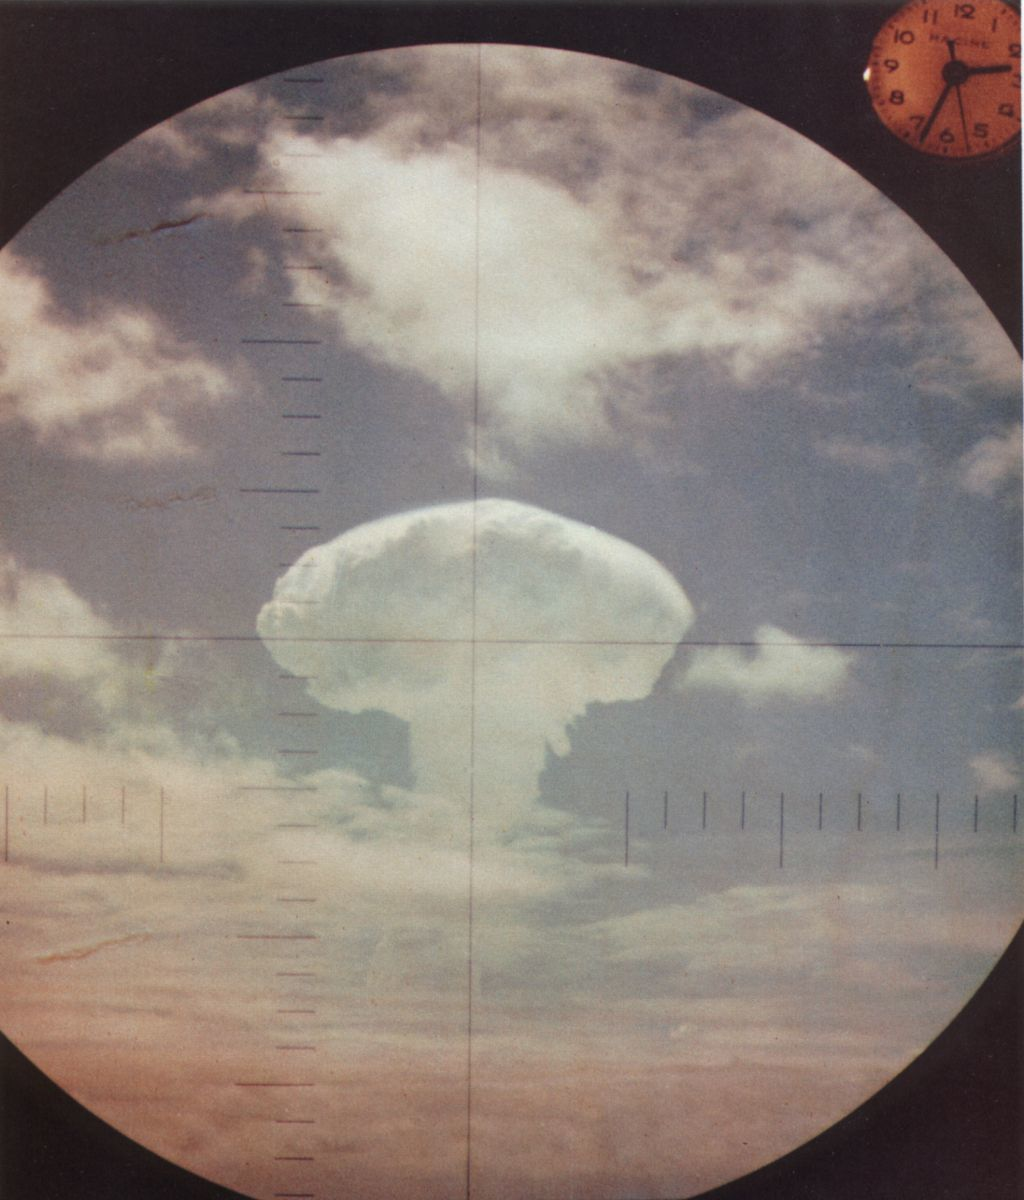 scope bombs Nuclear explosions